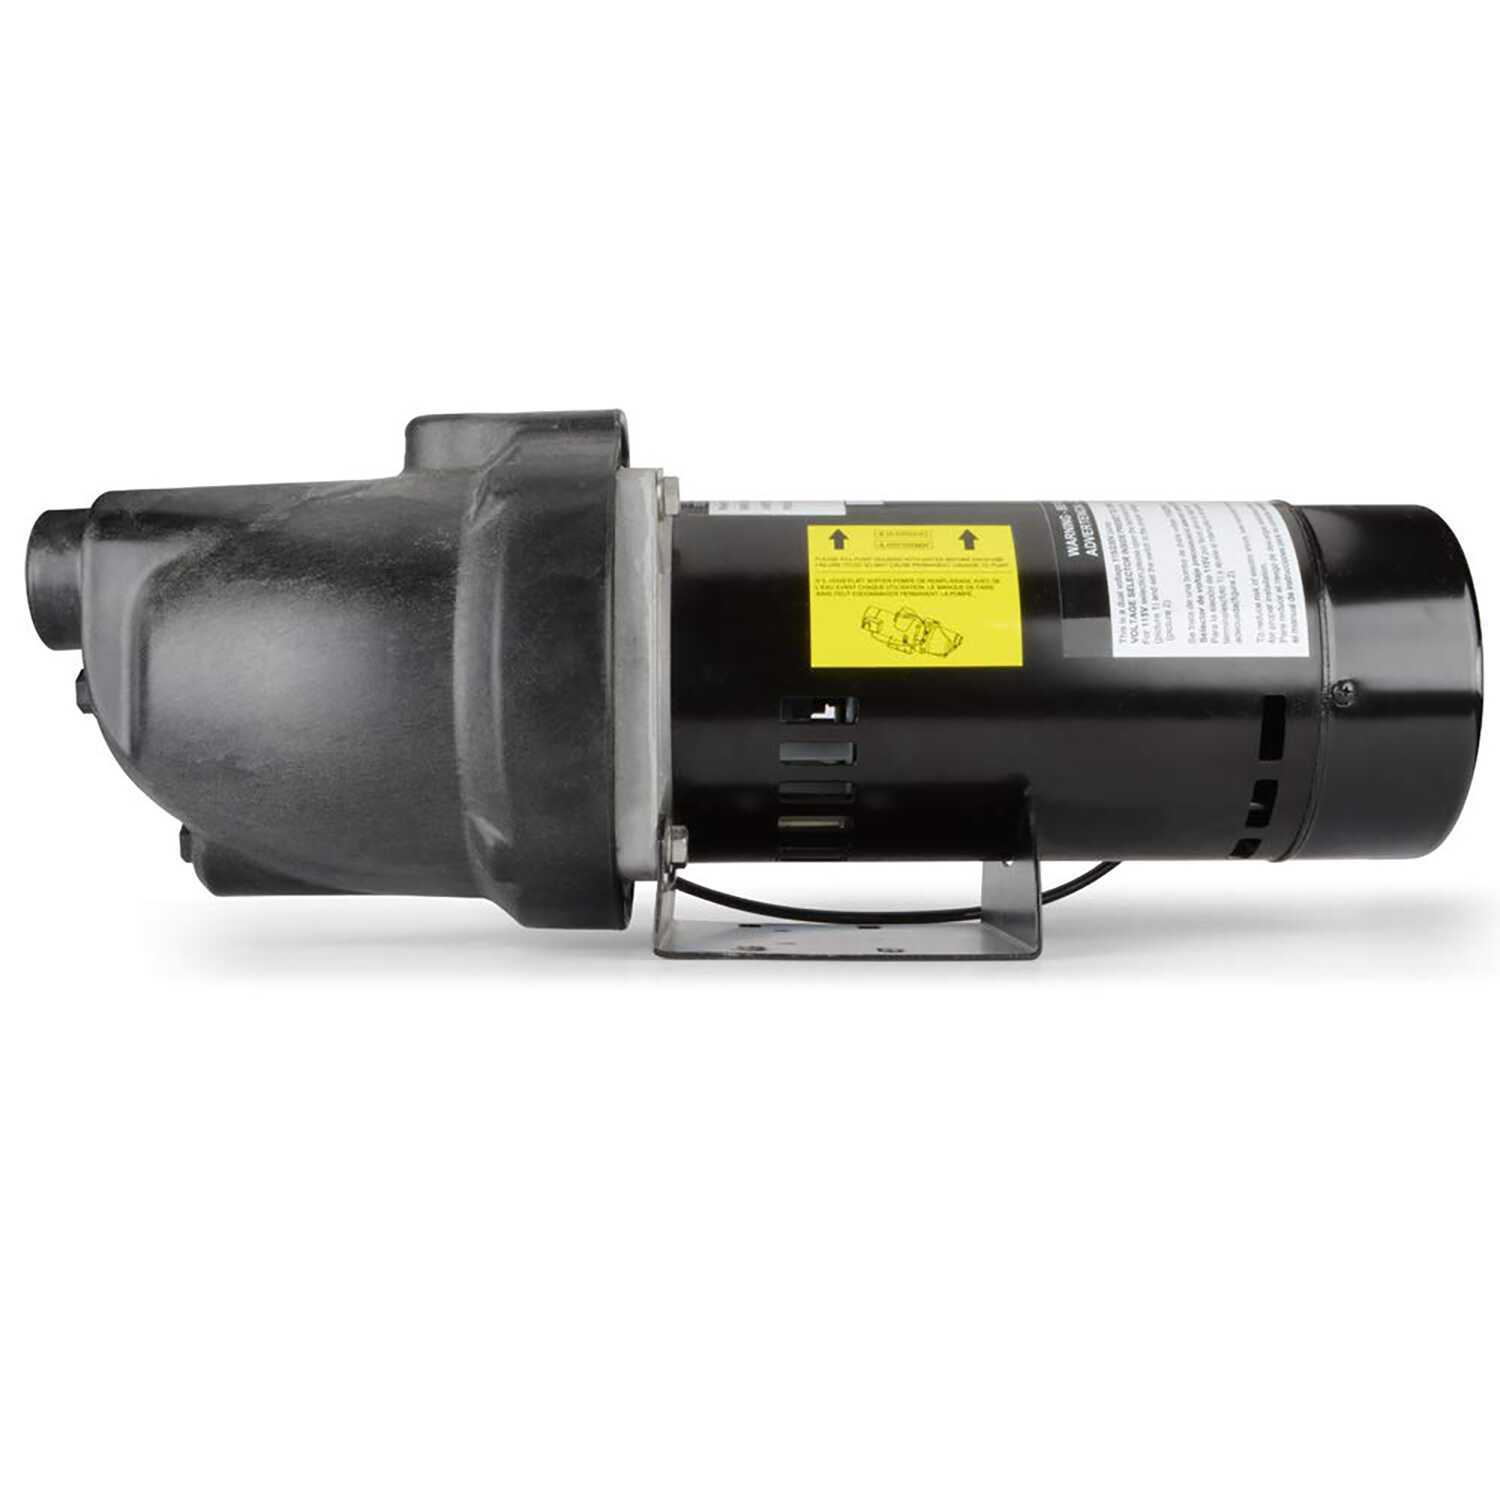 Ecoflo  1 hp 1038 gph Thermoplastic  Shallow Well Jet Pump